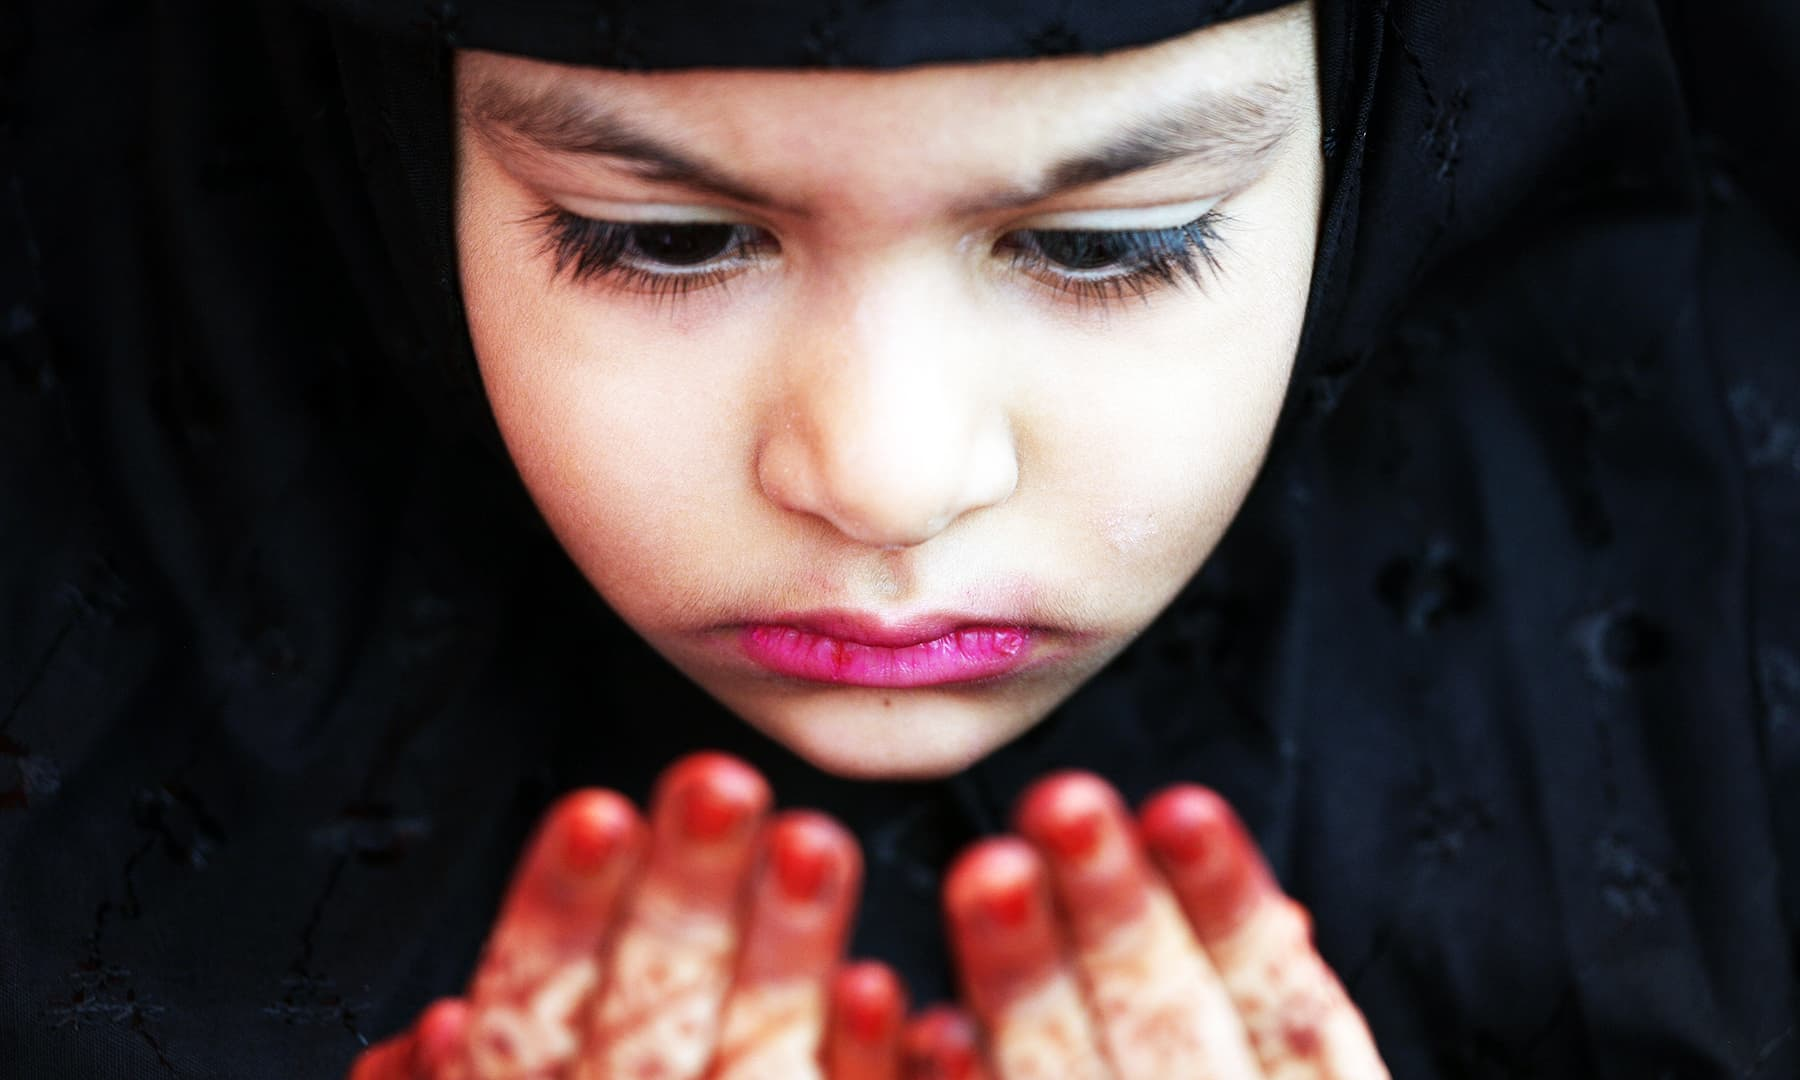 A Muslim girl offers an Eidul Azha prayer at a mosque in Chennai, India on August 12, 2019. — Reuters